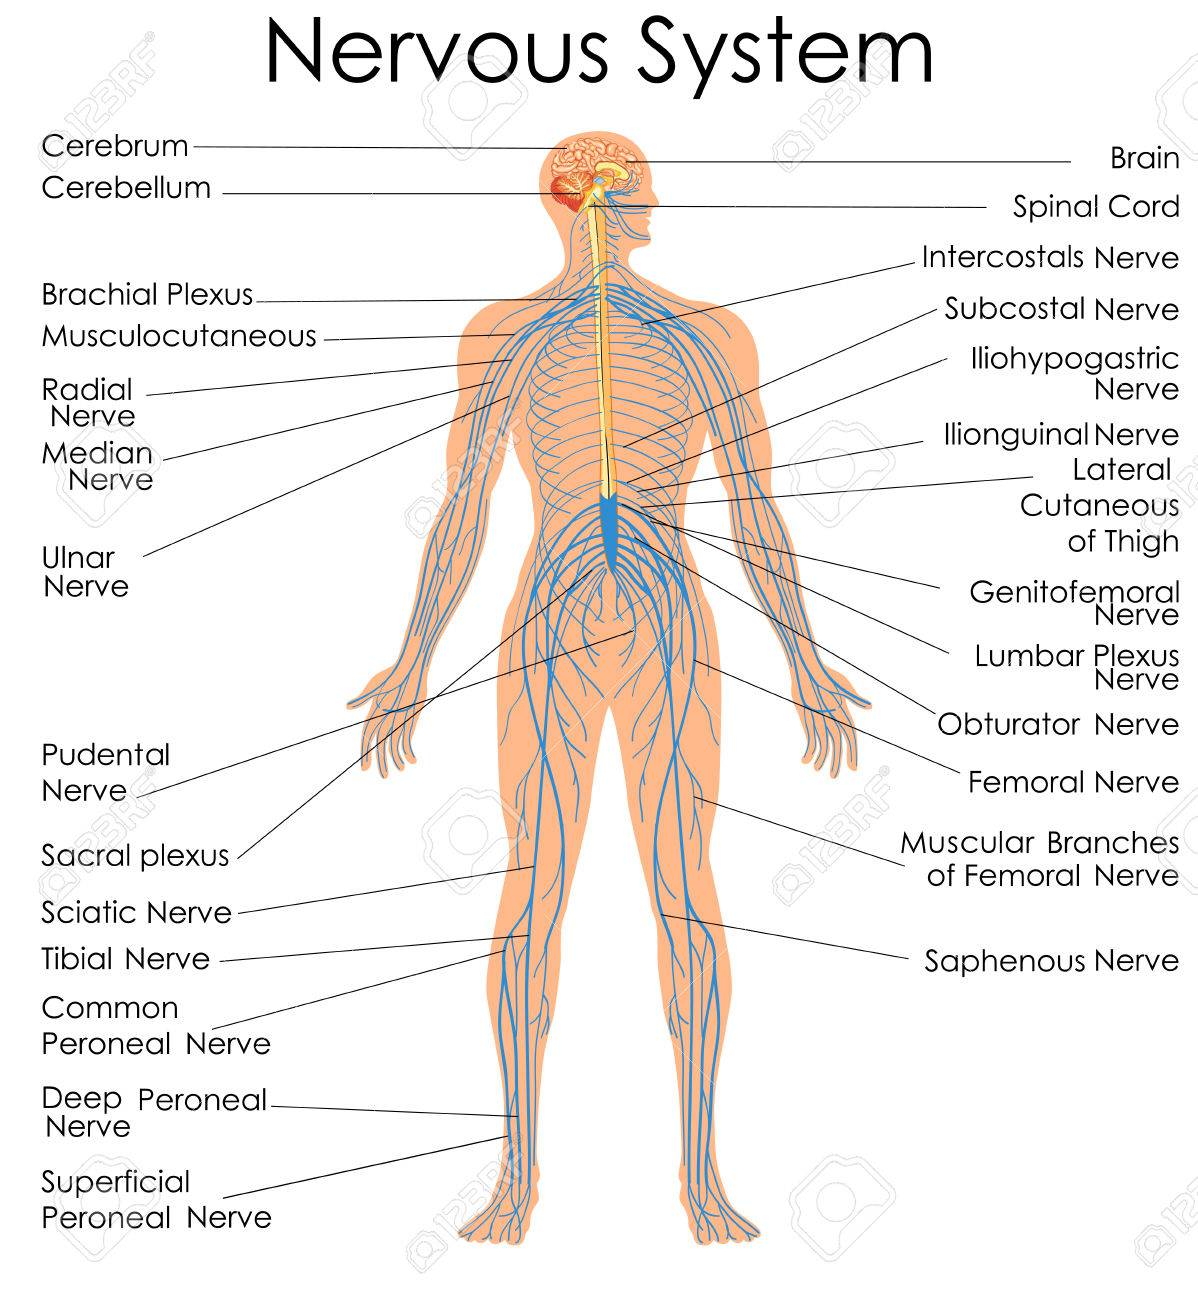 hight resolution of medical education chart of biology for nervous system diagram vector illustration stock vector 79651319